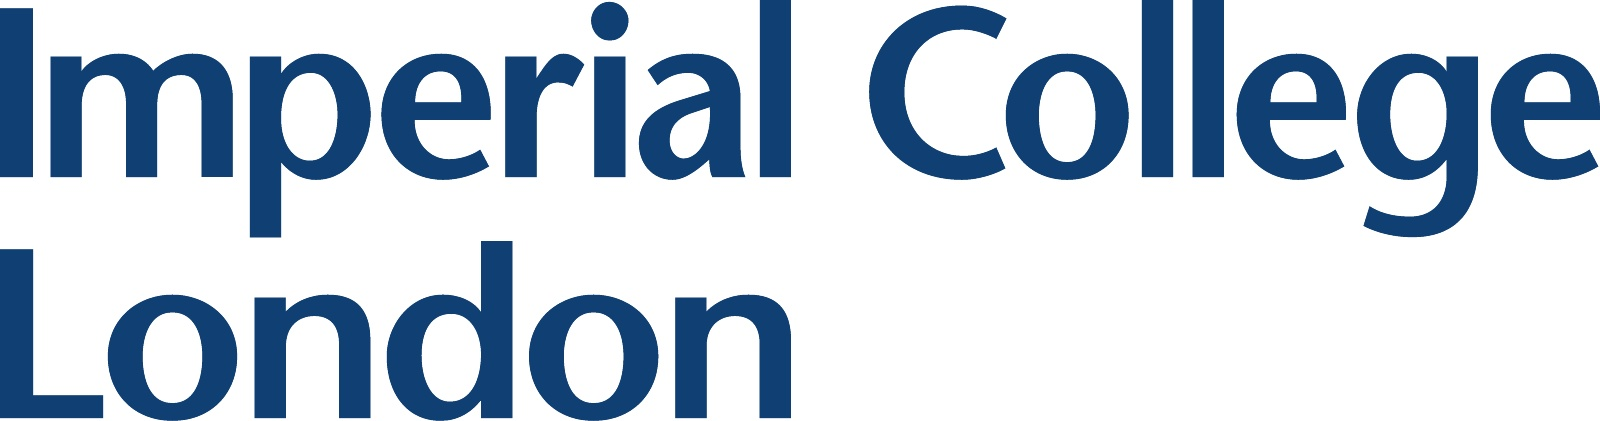 Imperial_College_London_monotone_logo.jpg